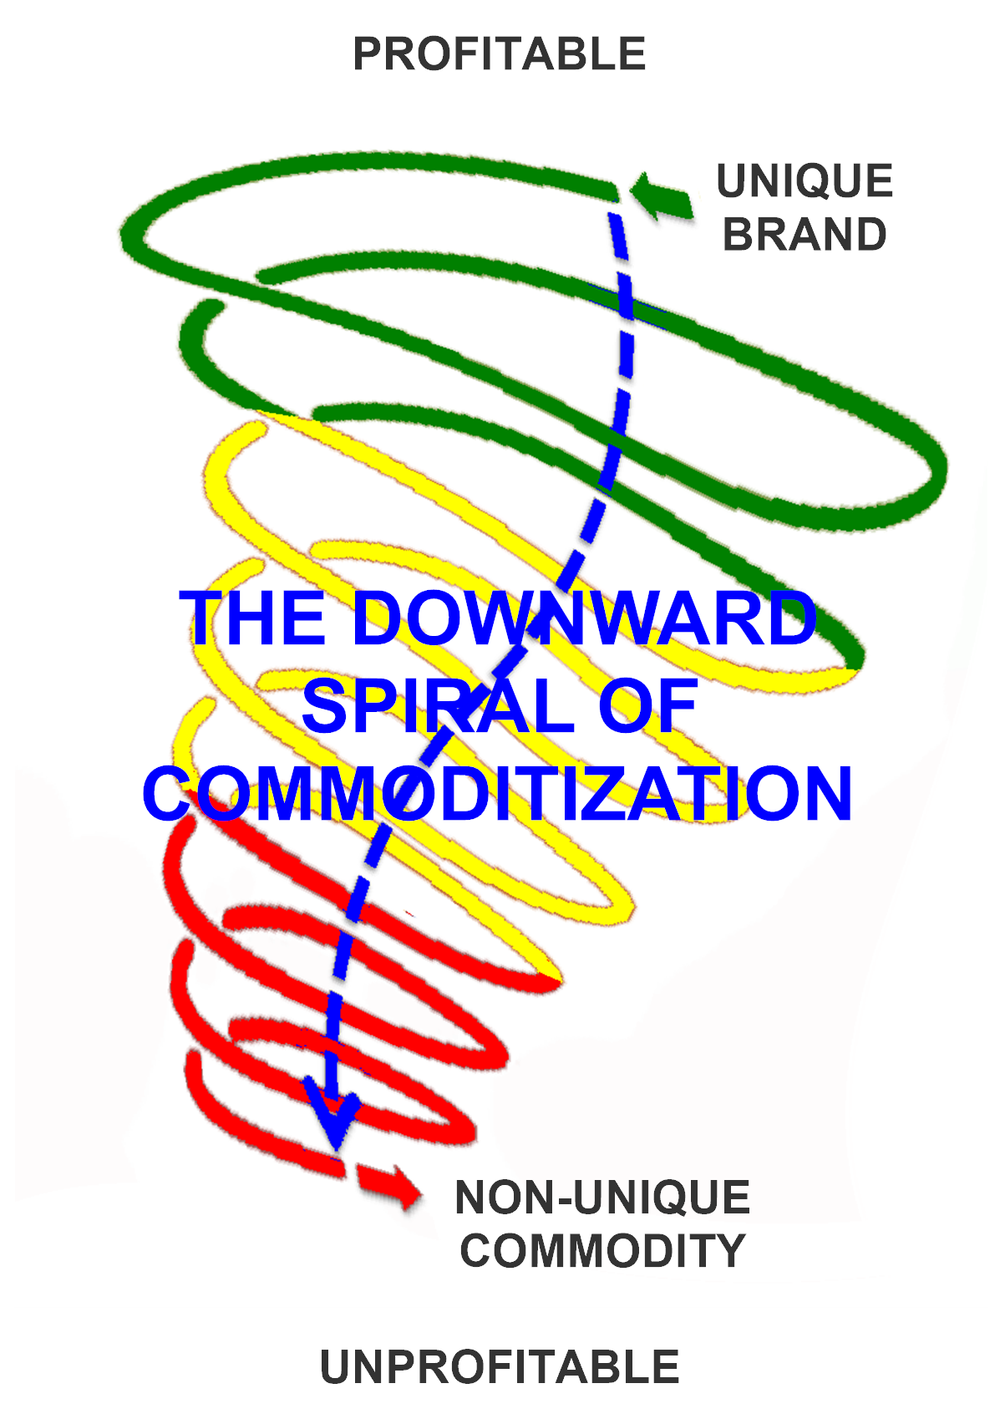 Am I Next? Downward Spiral of Commoditization